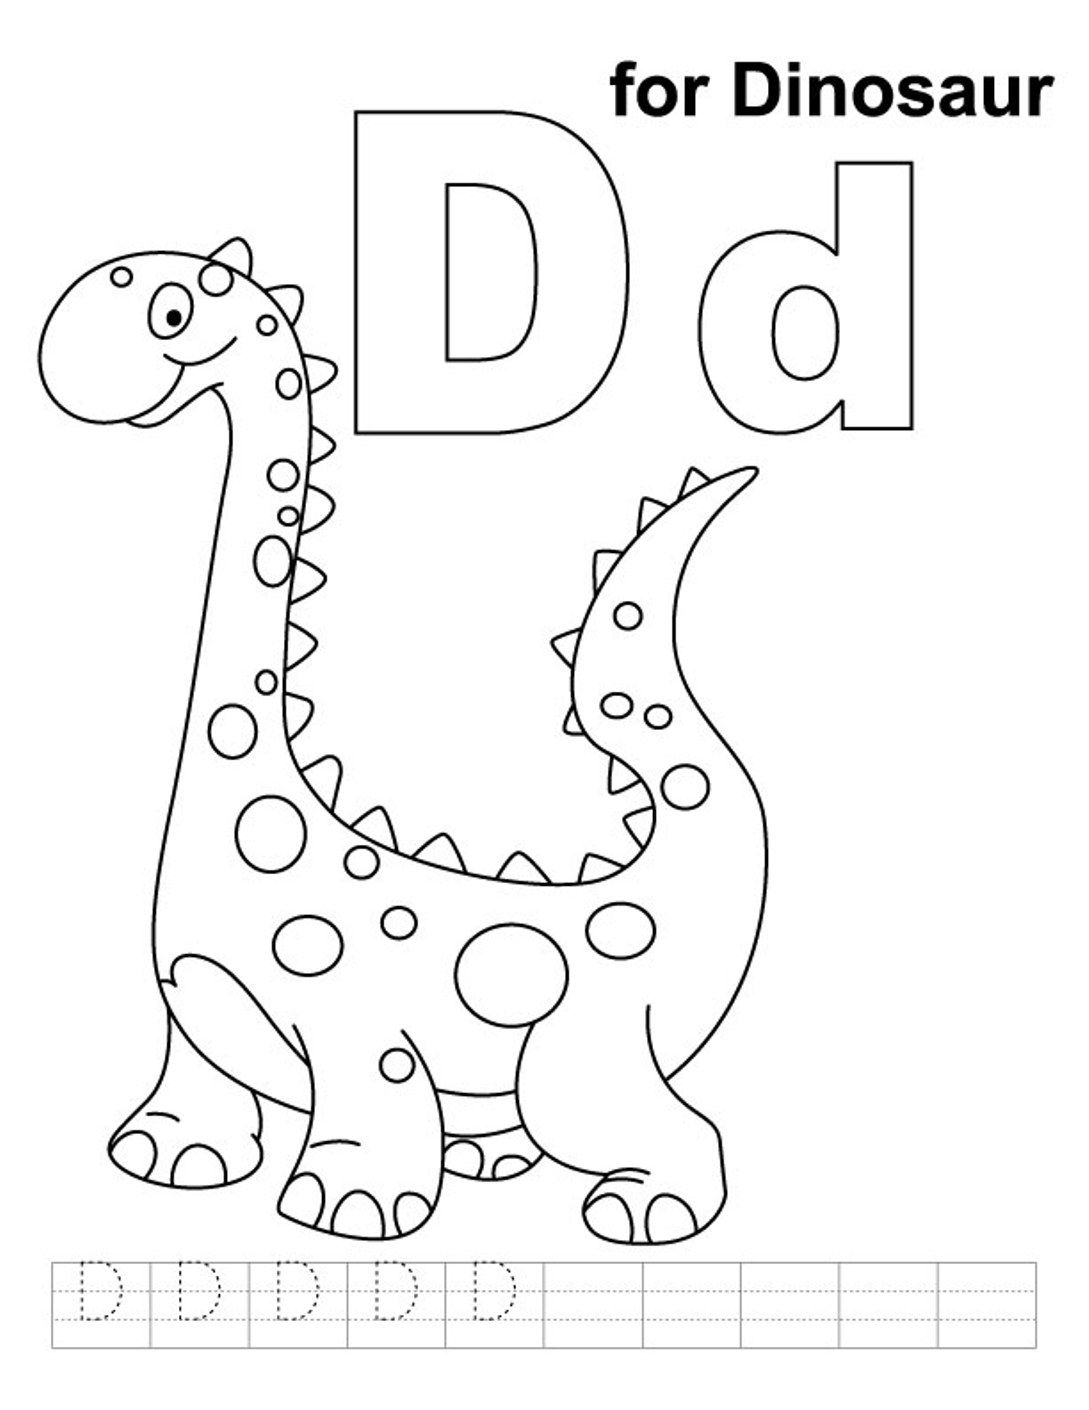 Dinosaur Printable Alphabet Coloring Pages